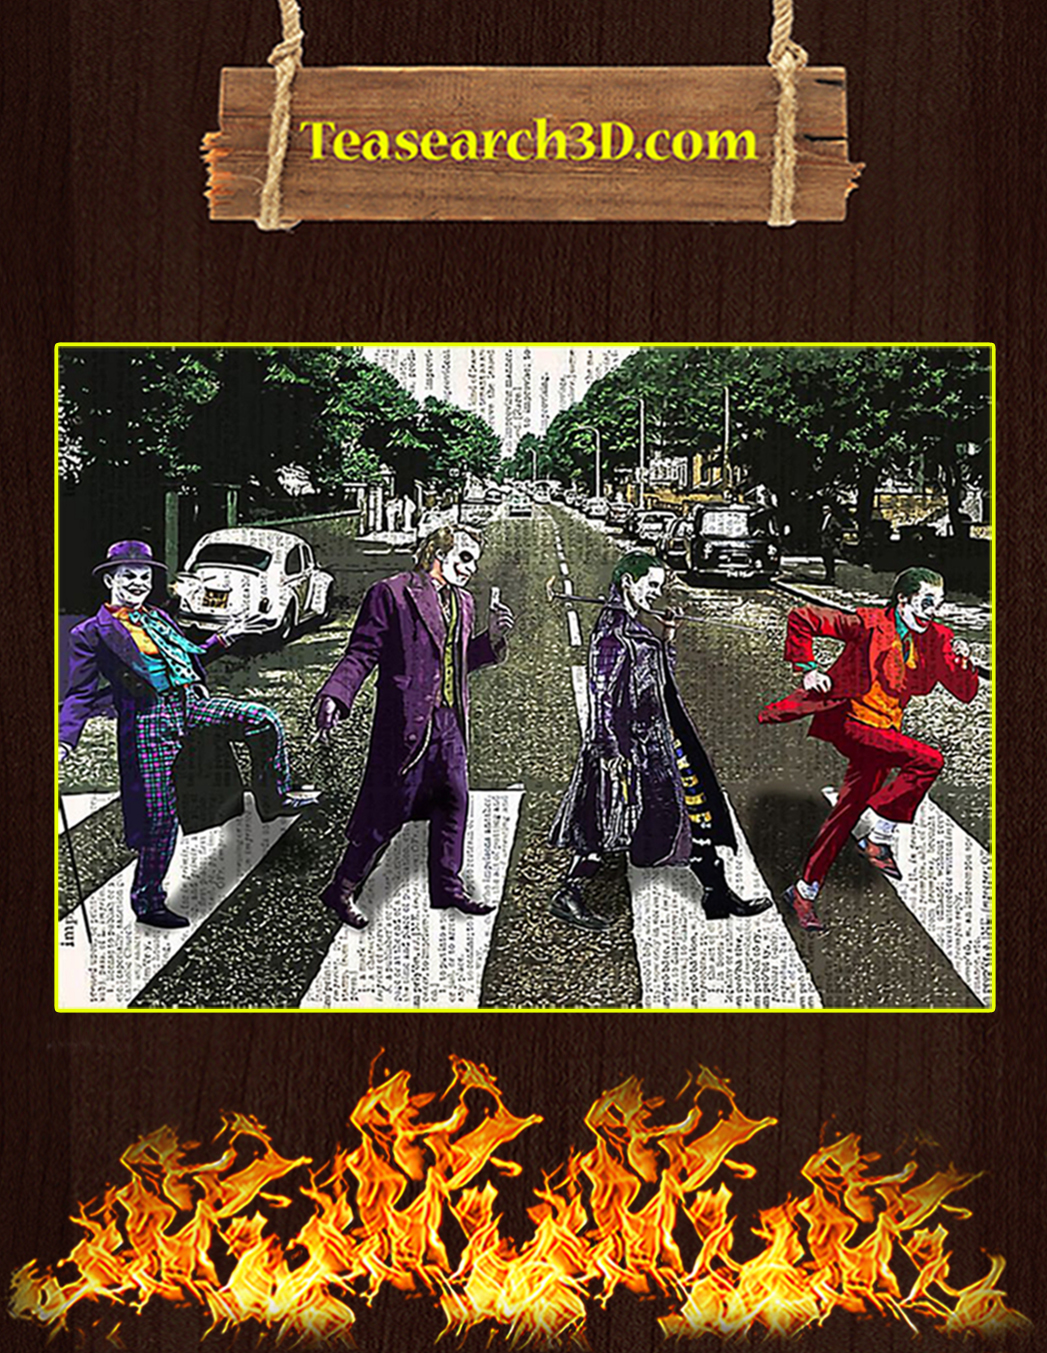 Jocker abbey road parody poster A1